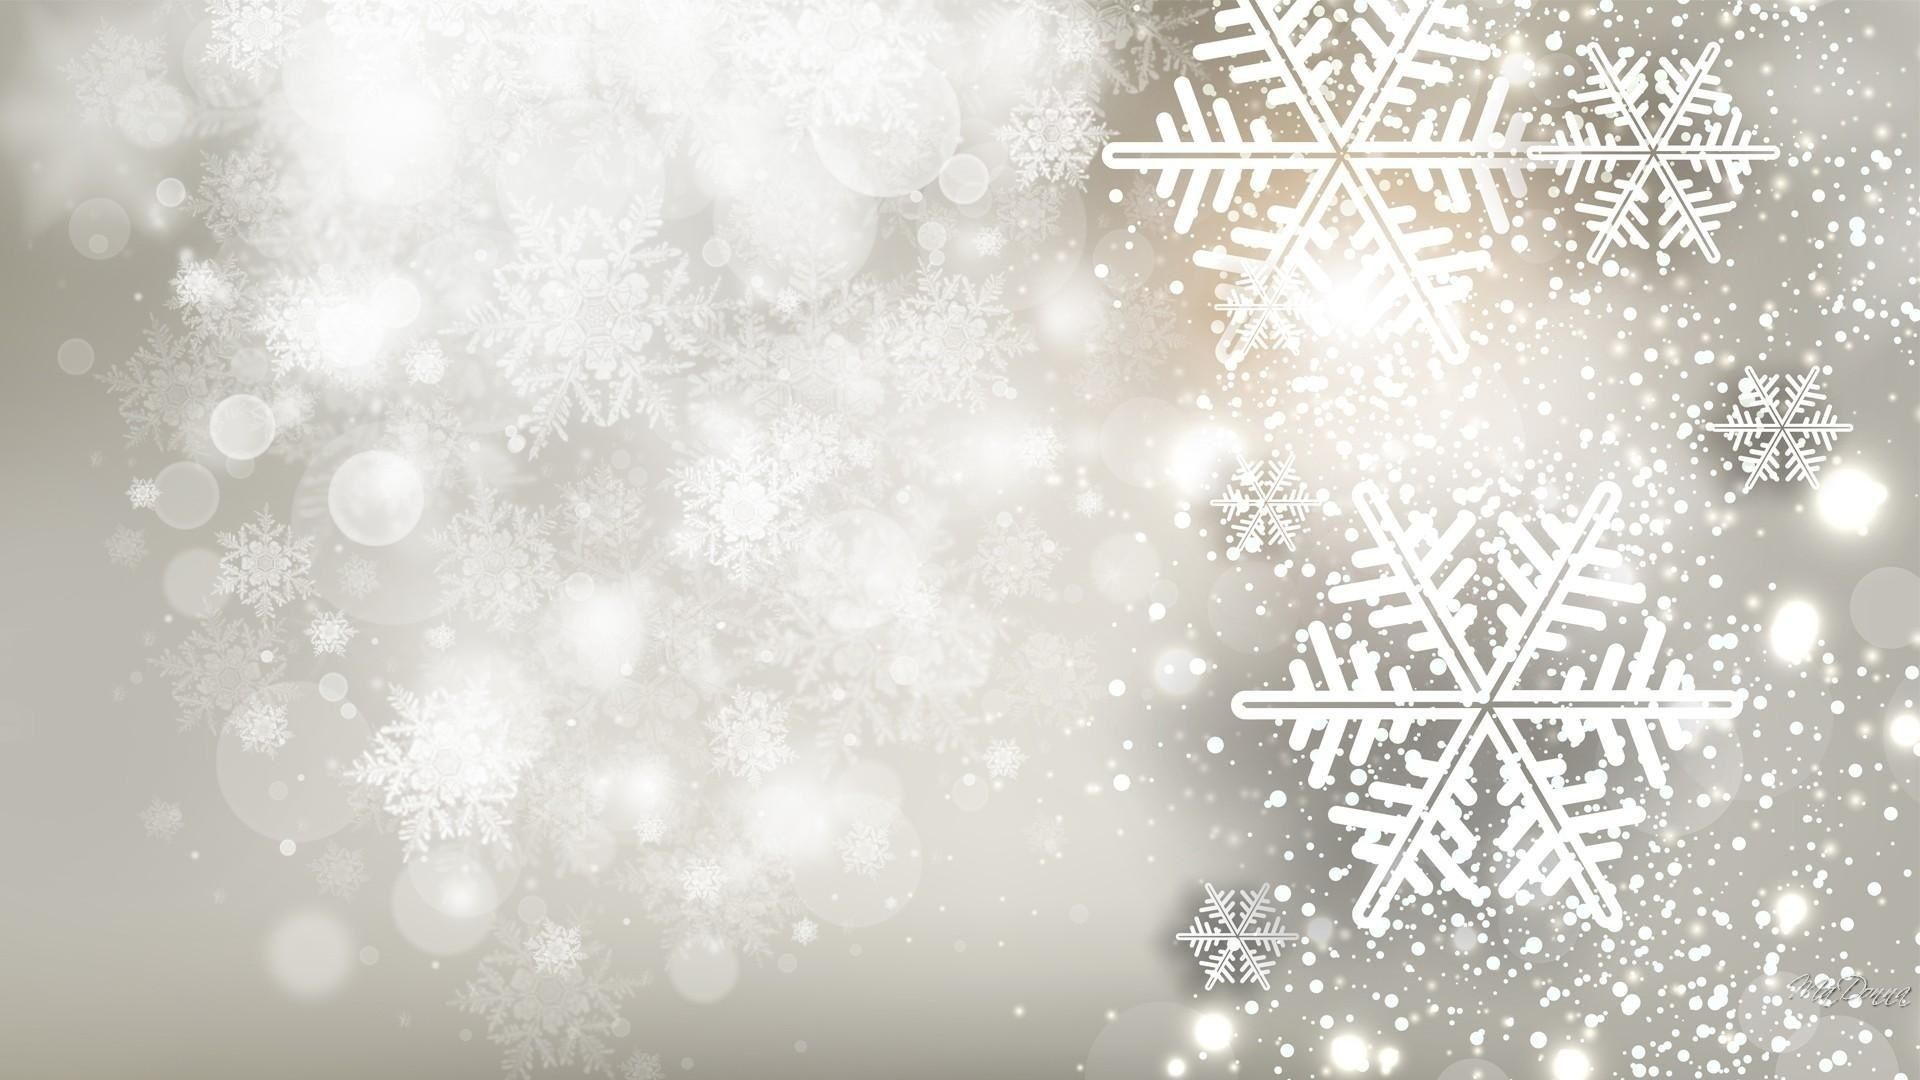 New Year With Snowflakes hd wallpaper 1080